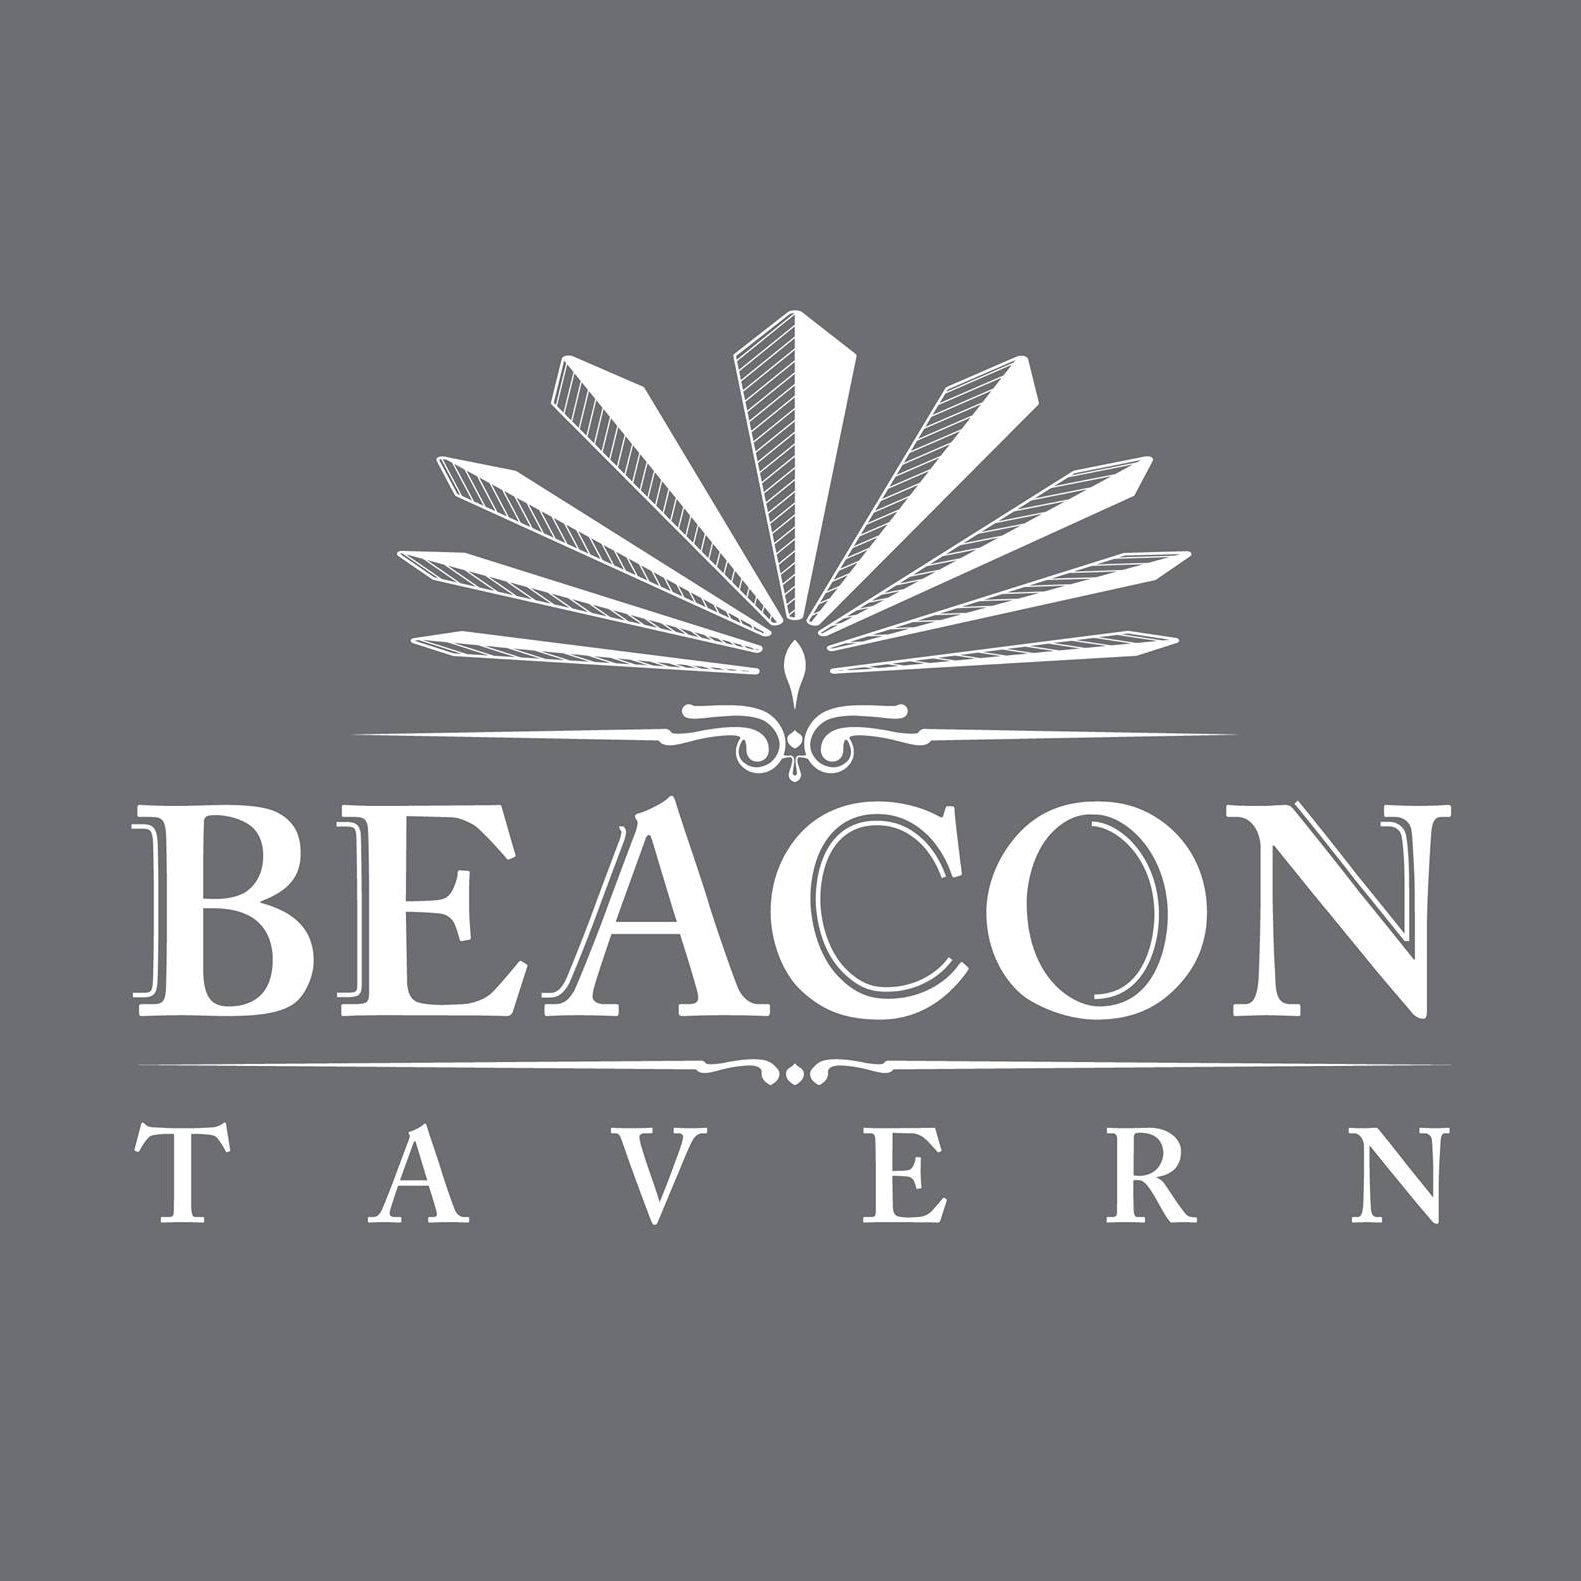 Beacon Tavern Logo